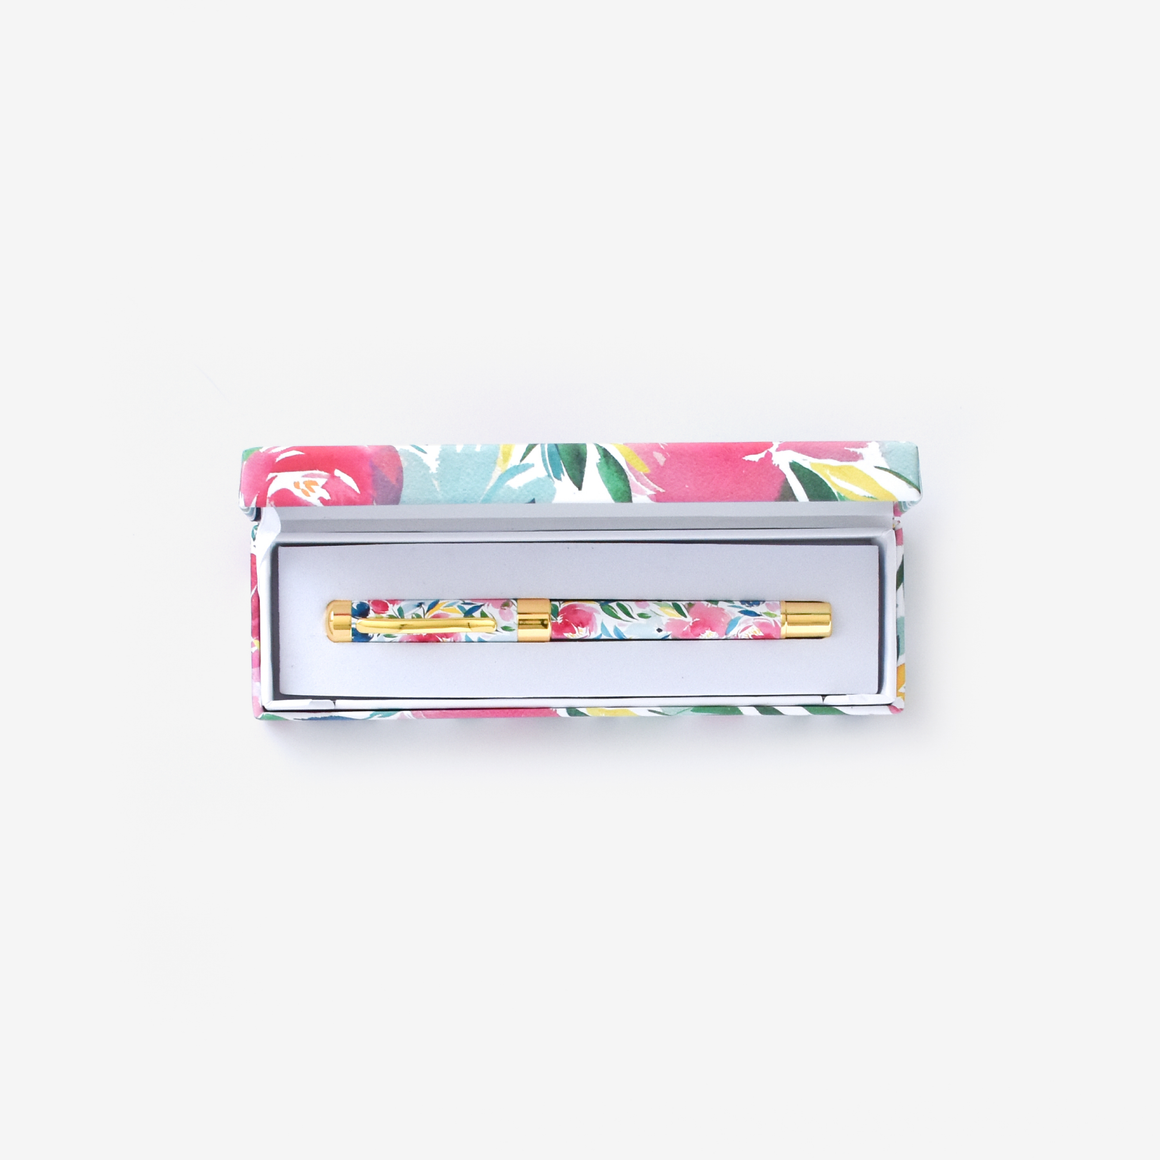 featured: HAPPY FLORAL PEN IN OPEN BOX